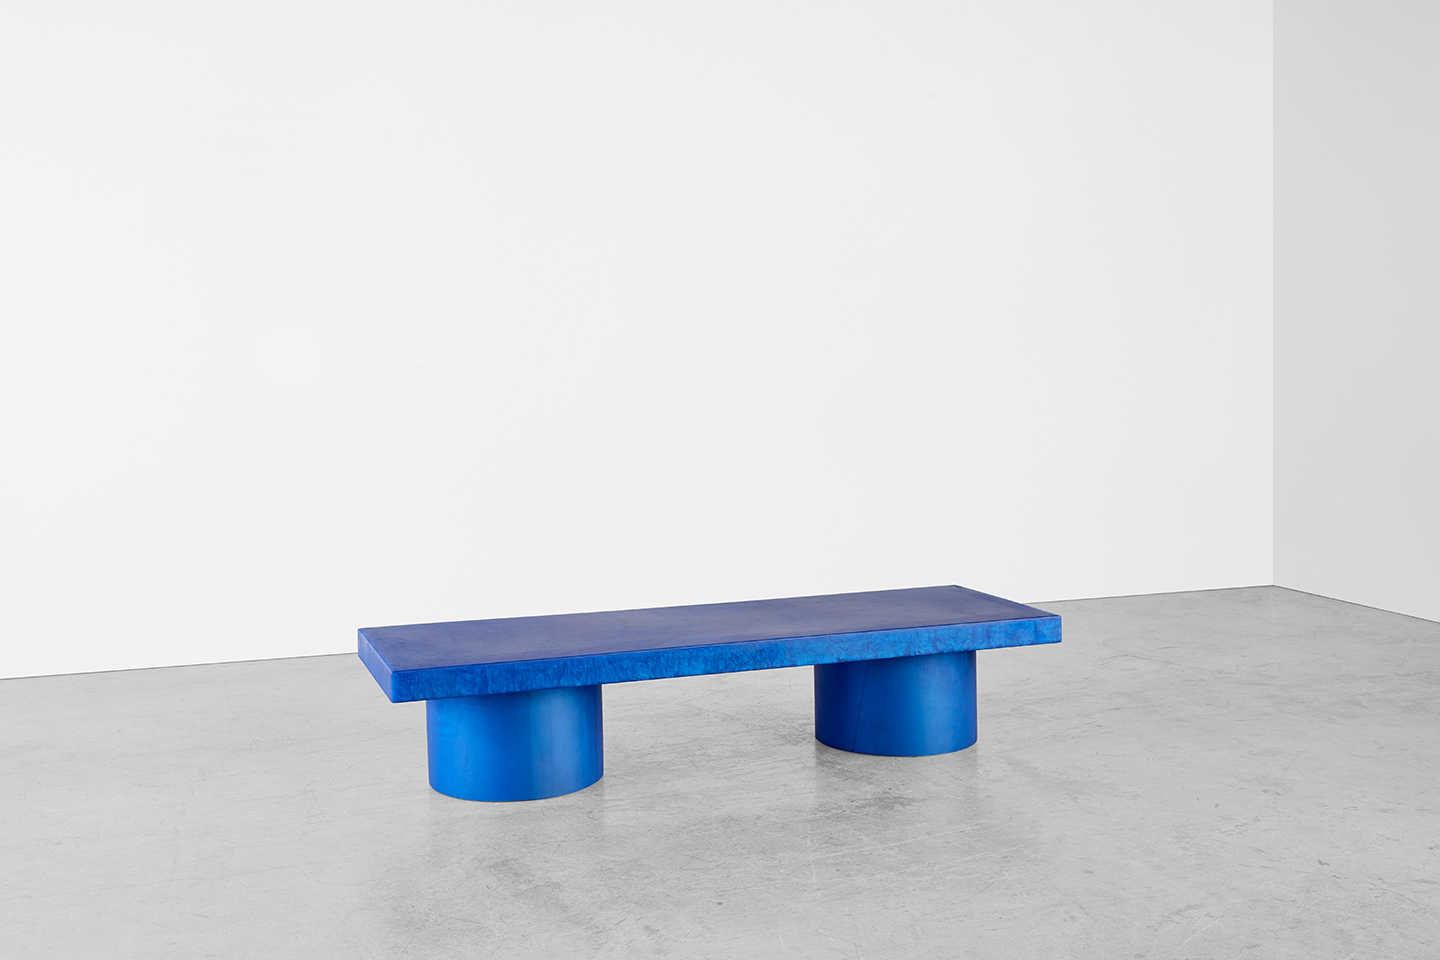 blue unique coffee table called the torch table